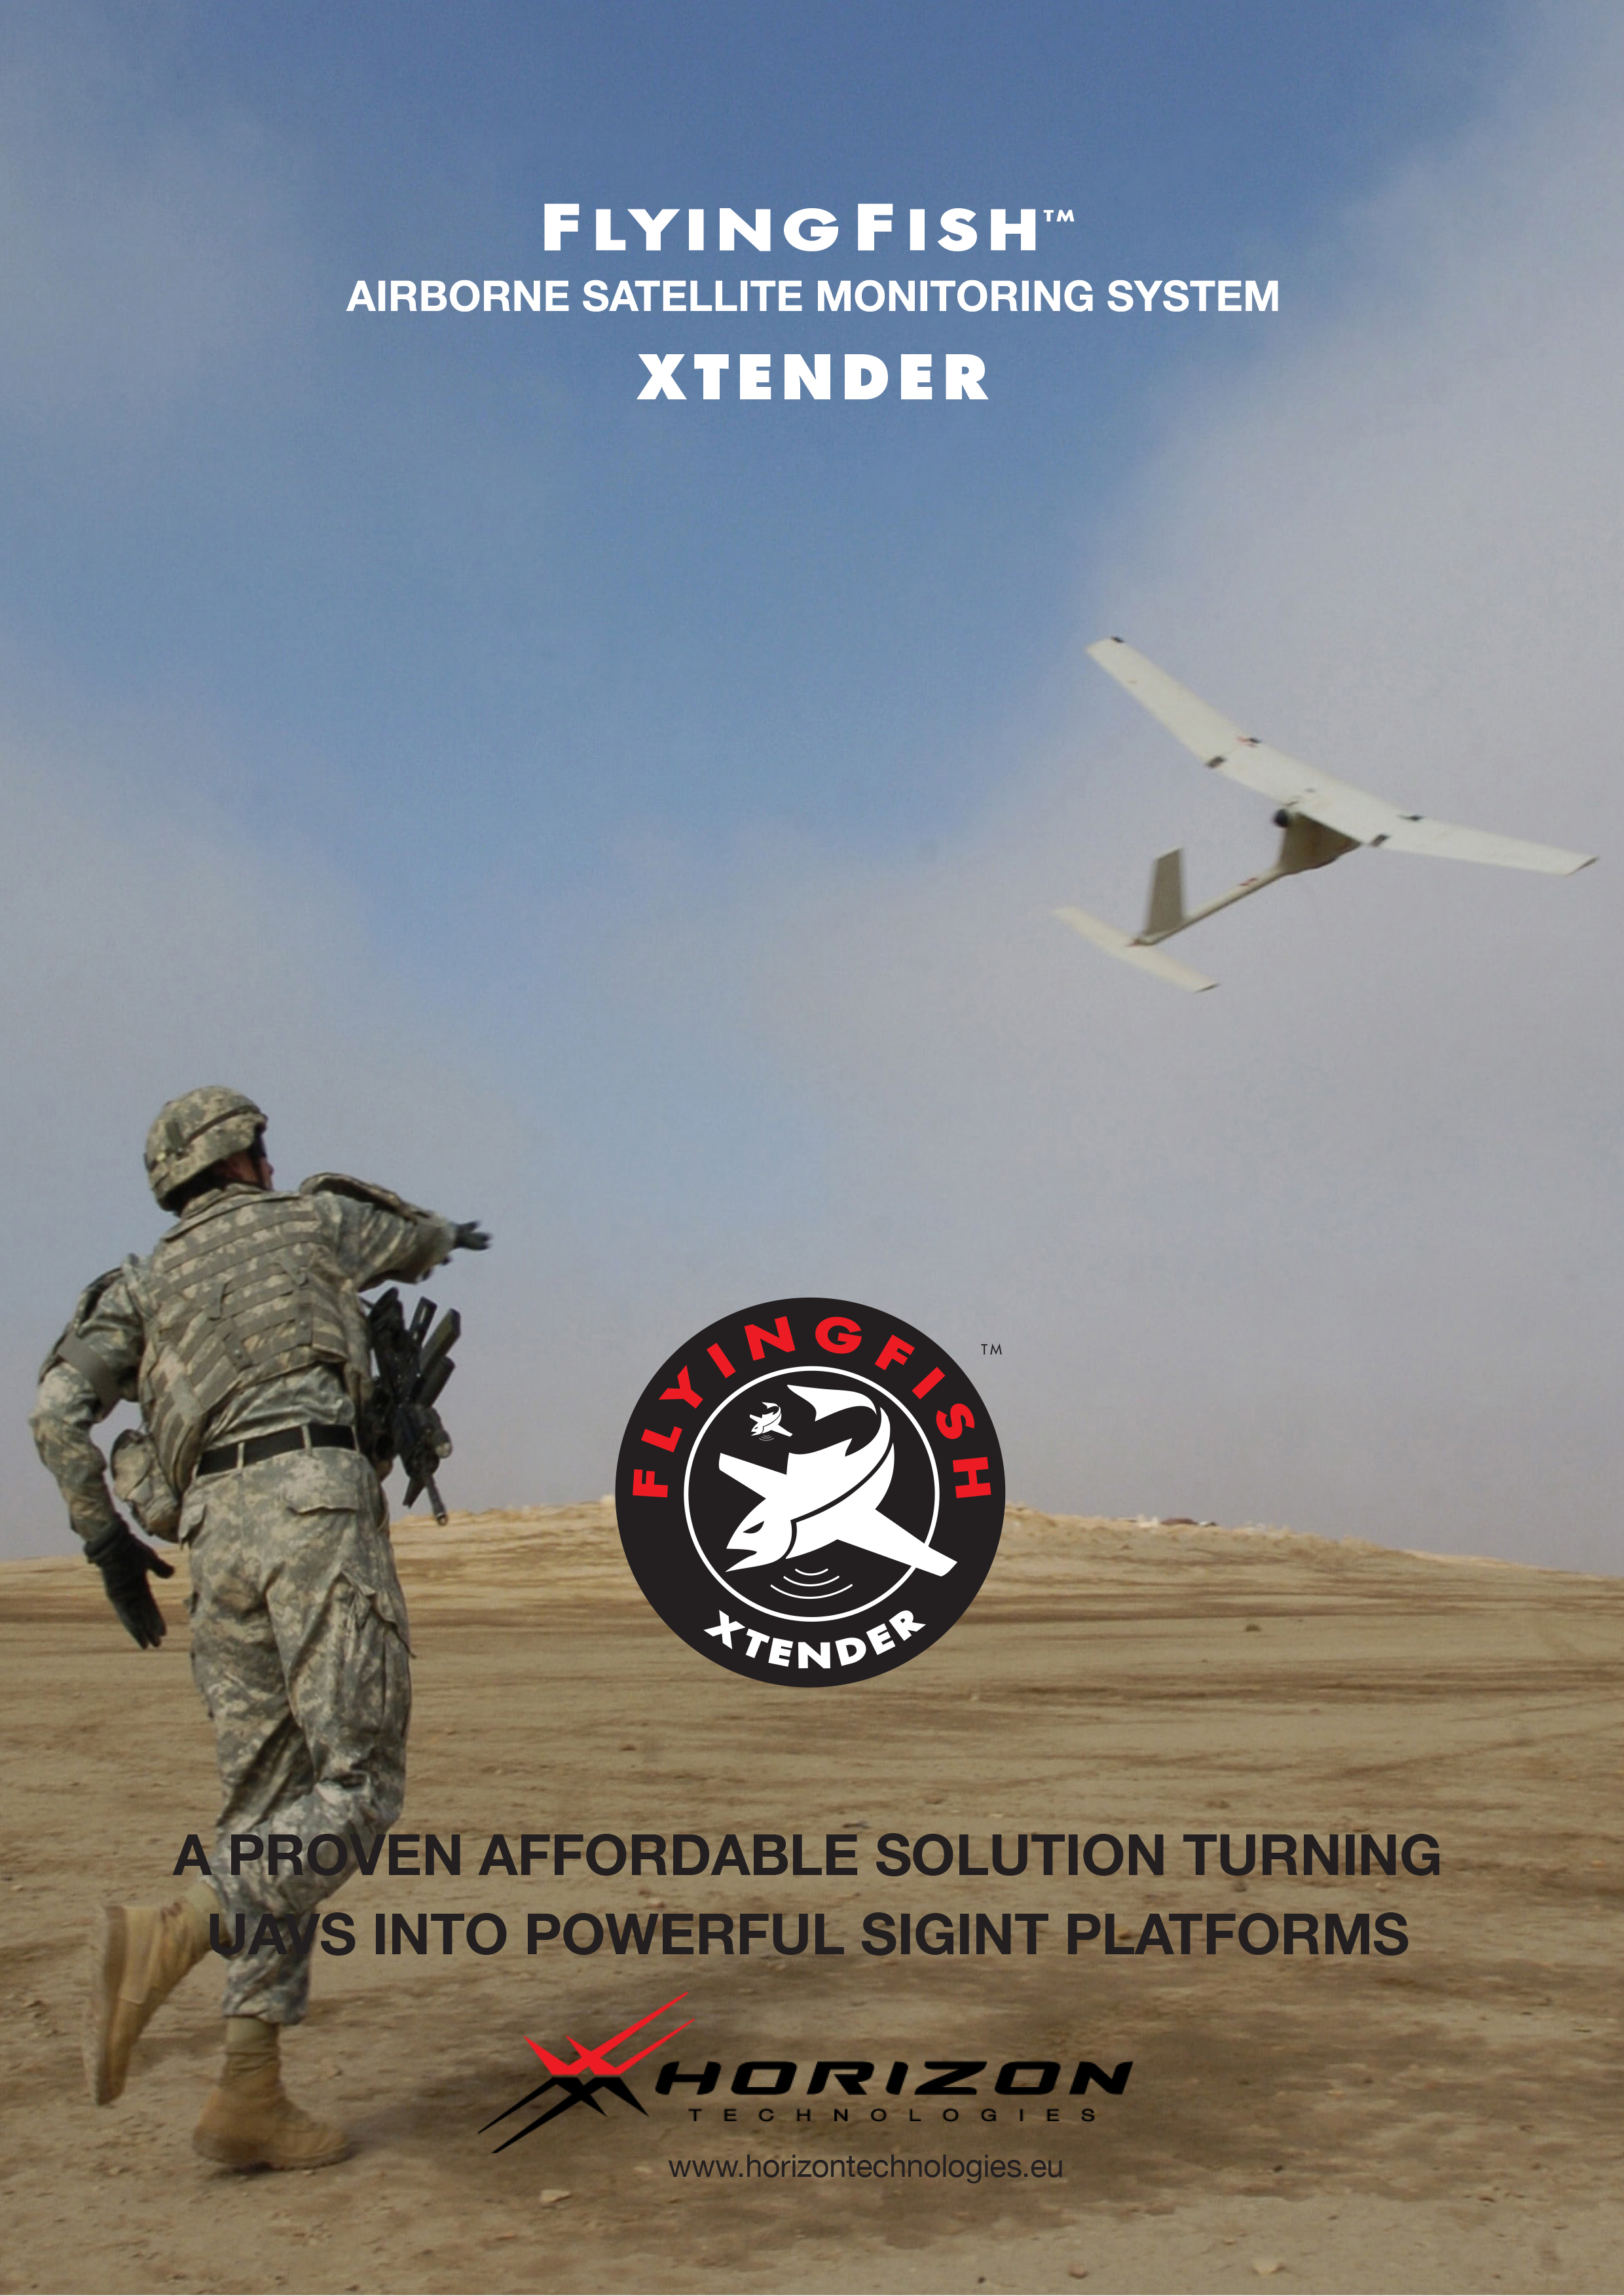 FlyingFish Xtender Airborne Satellite Monitoring System